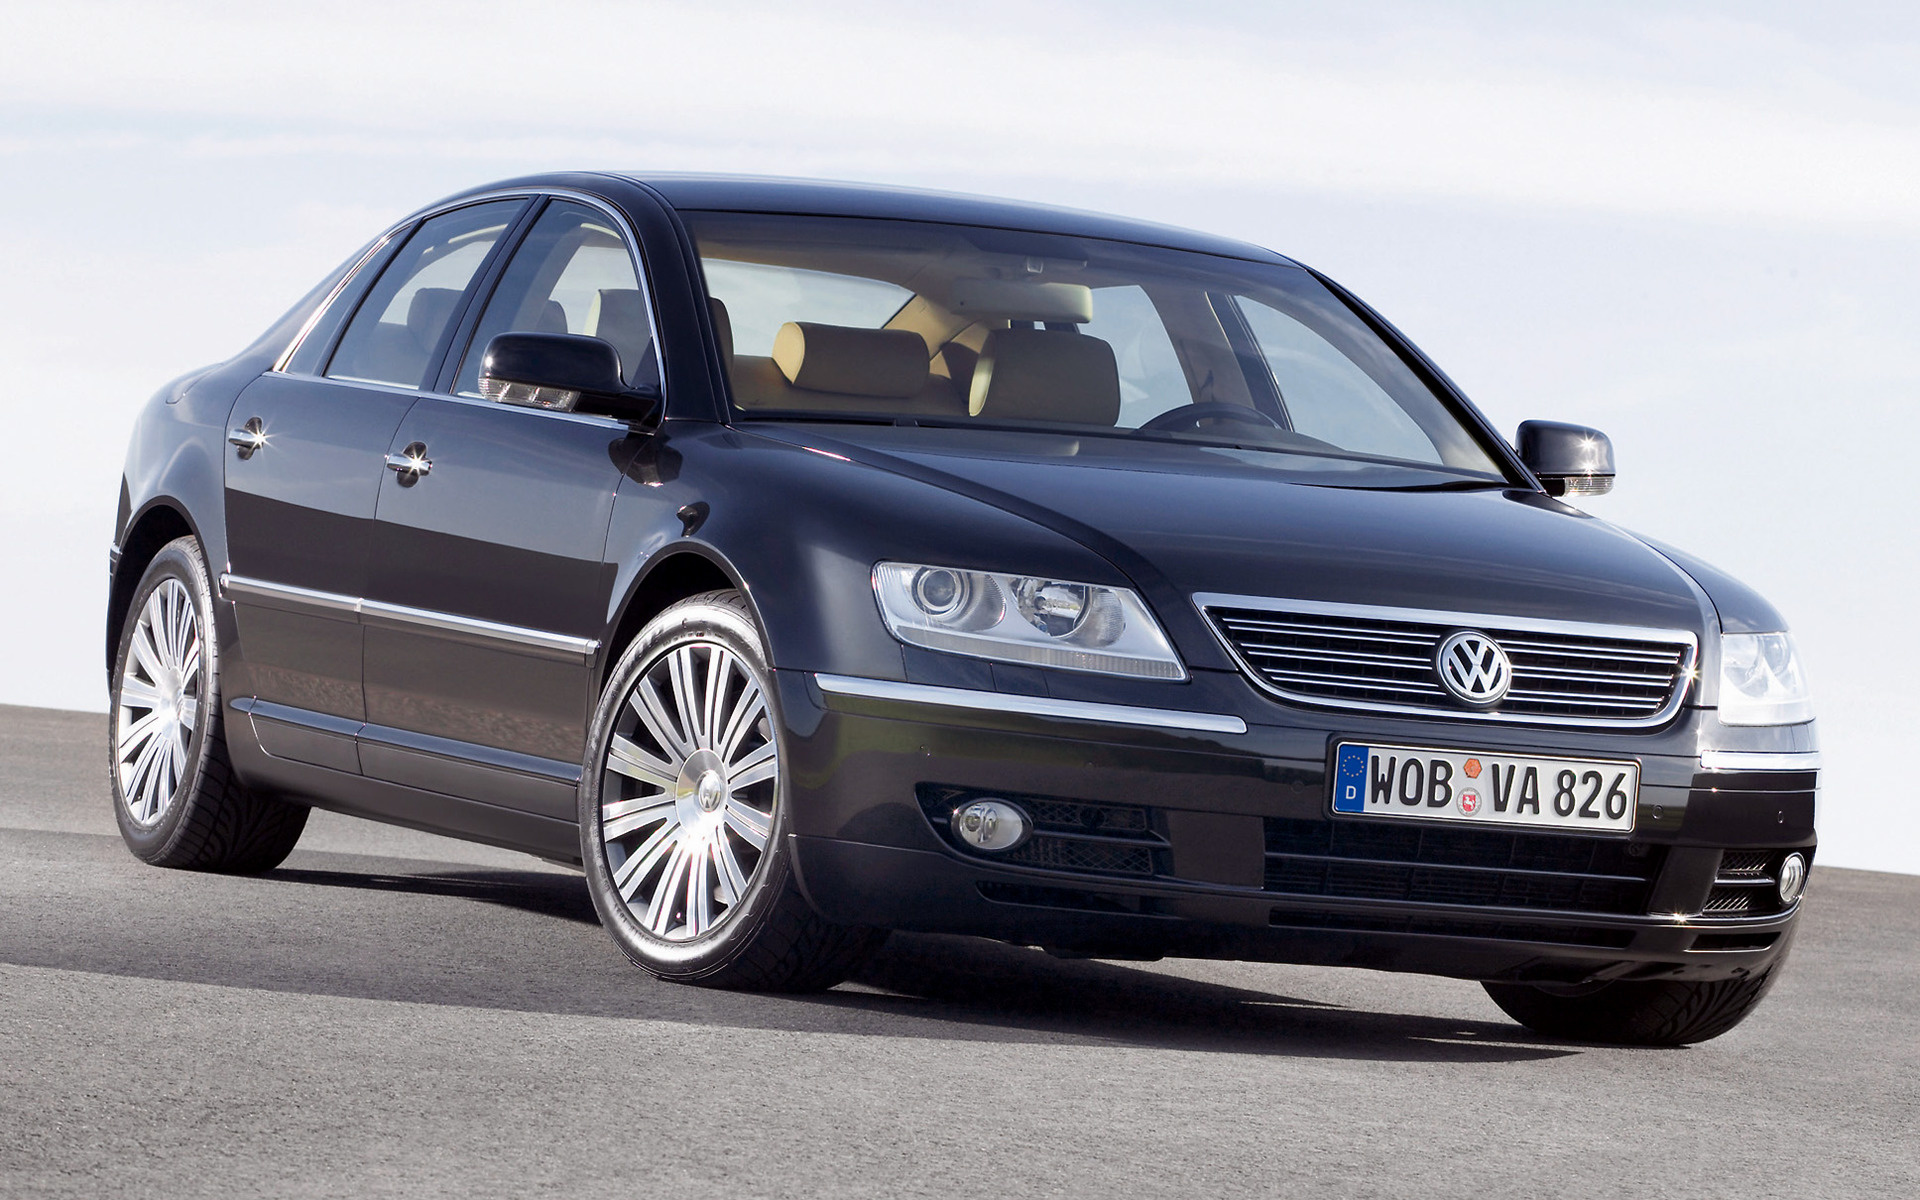 Volkswagen Phaeton (2002) Wallpapers and HD Images - Car Pixel